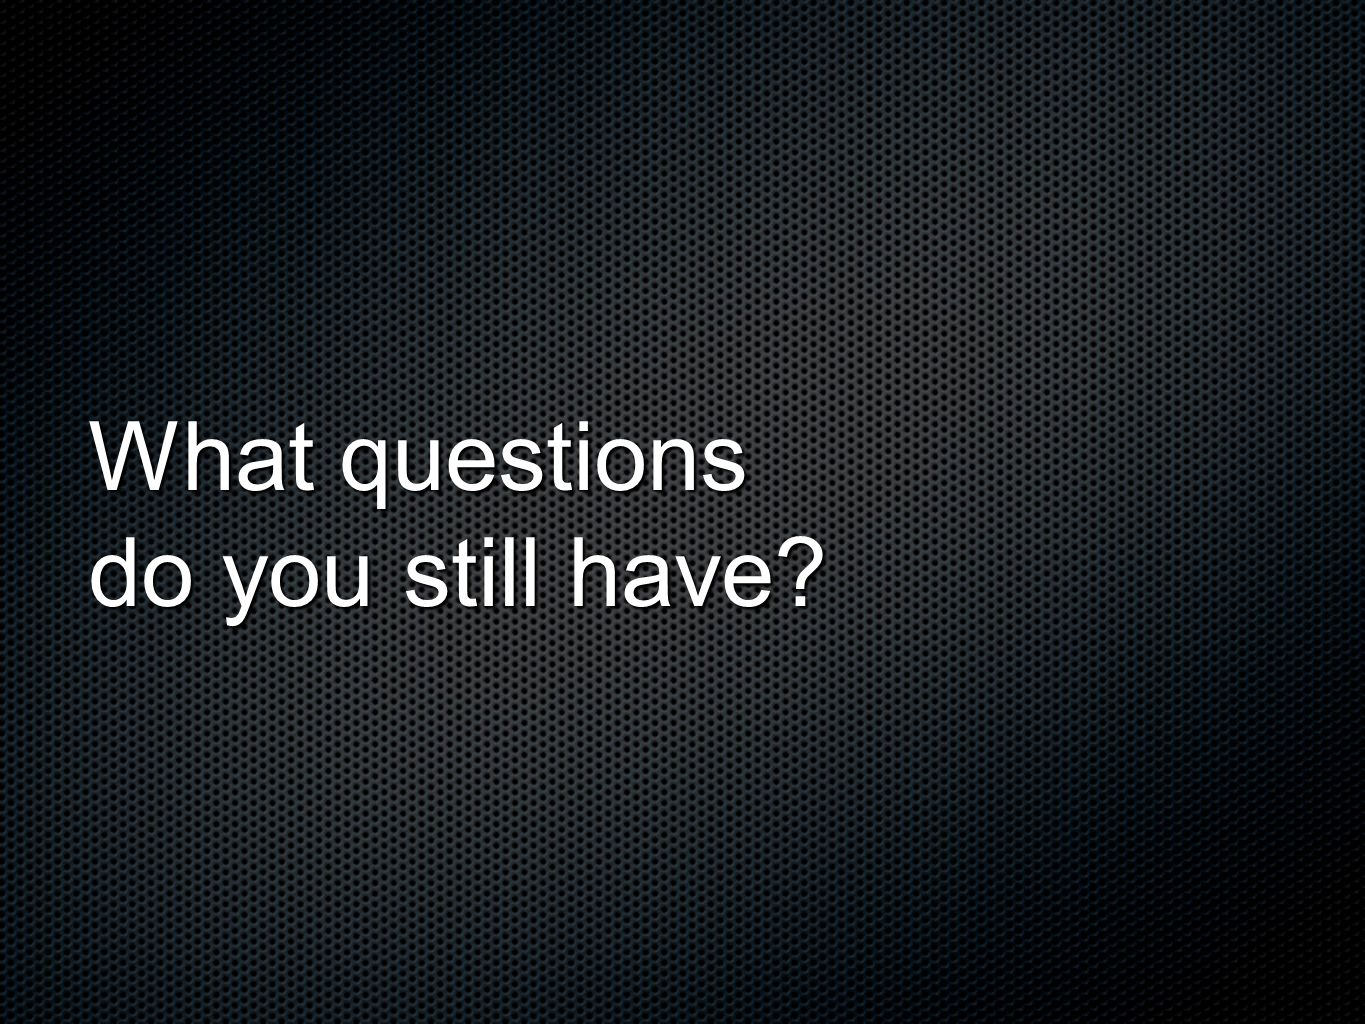 What questions do you still have